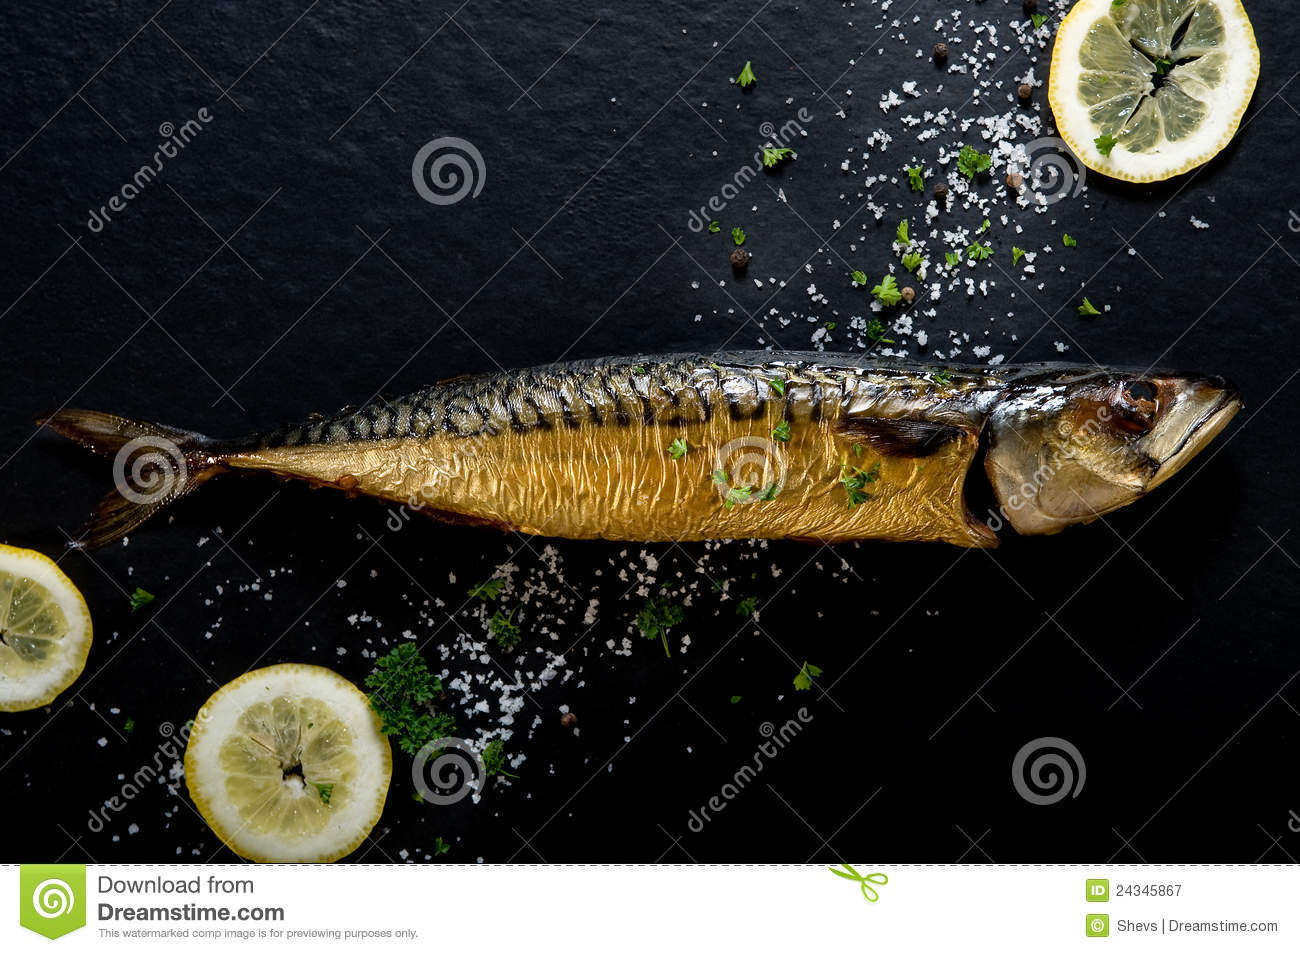 Smoked fish (mackerel)